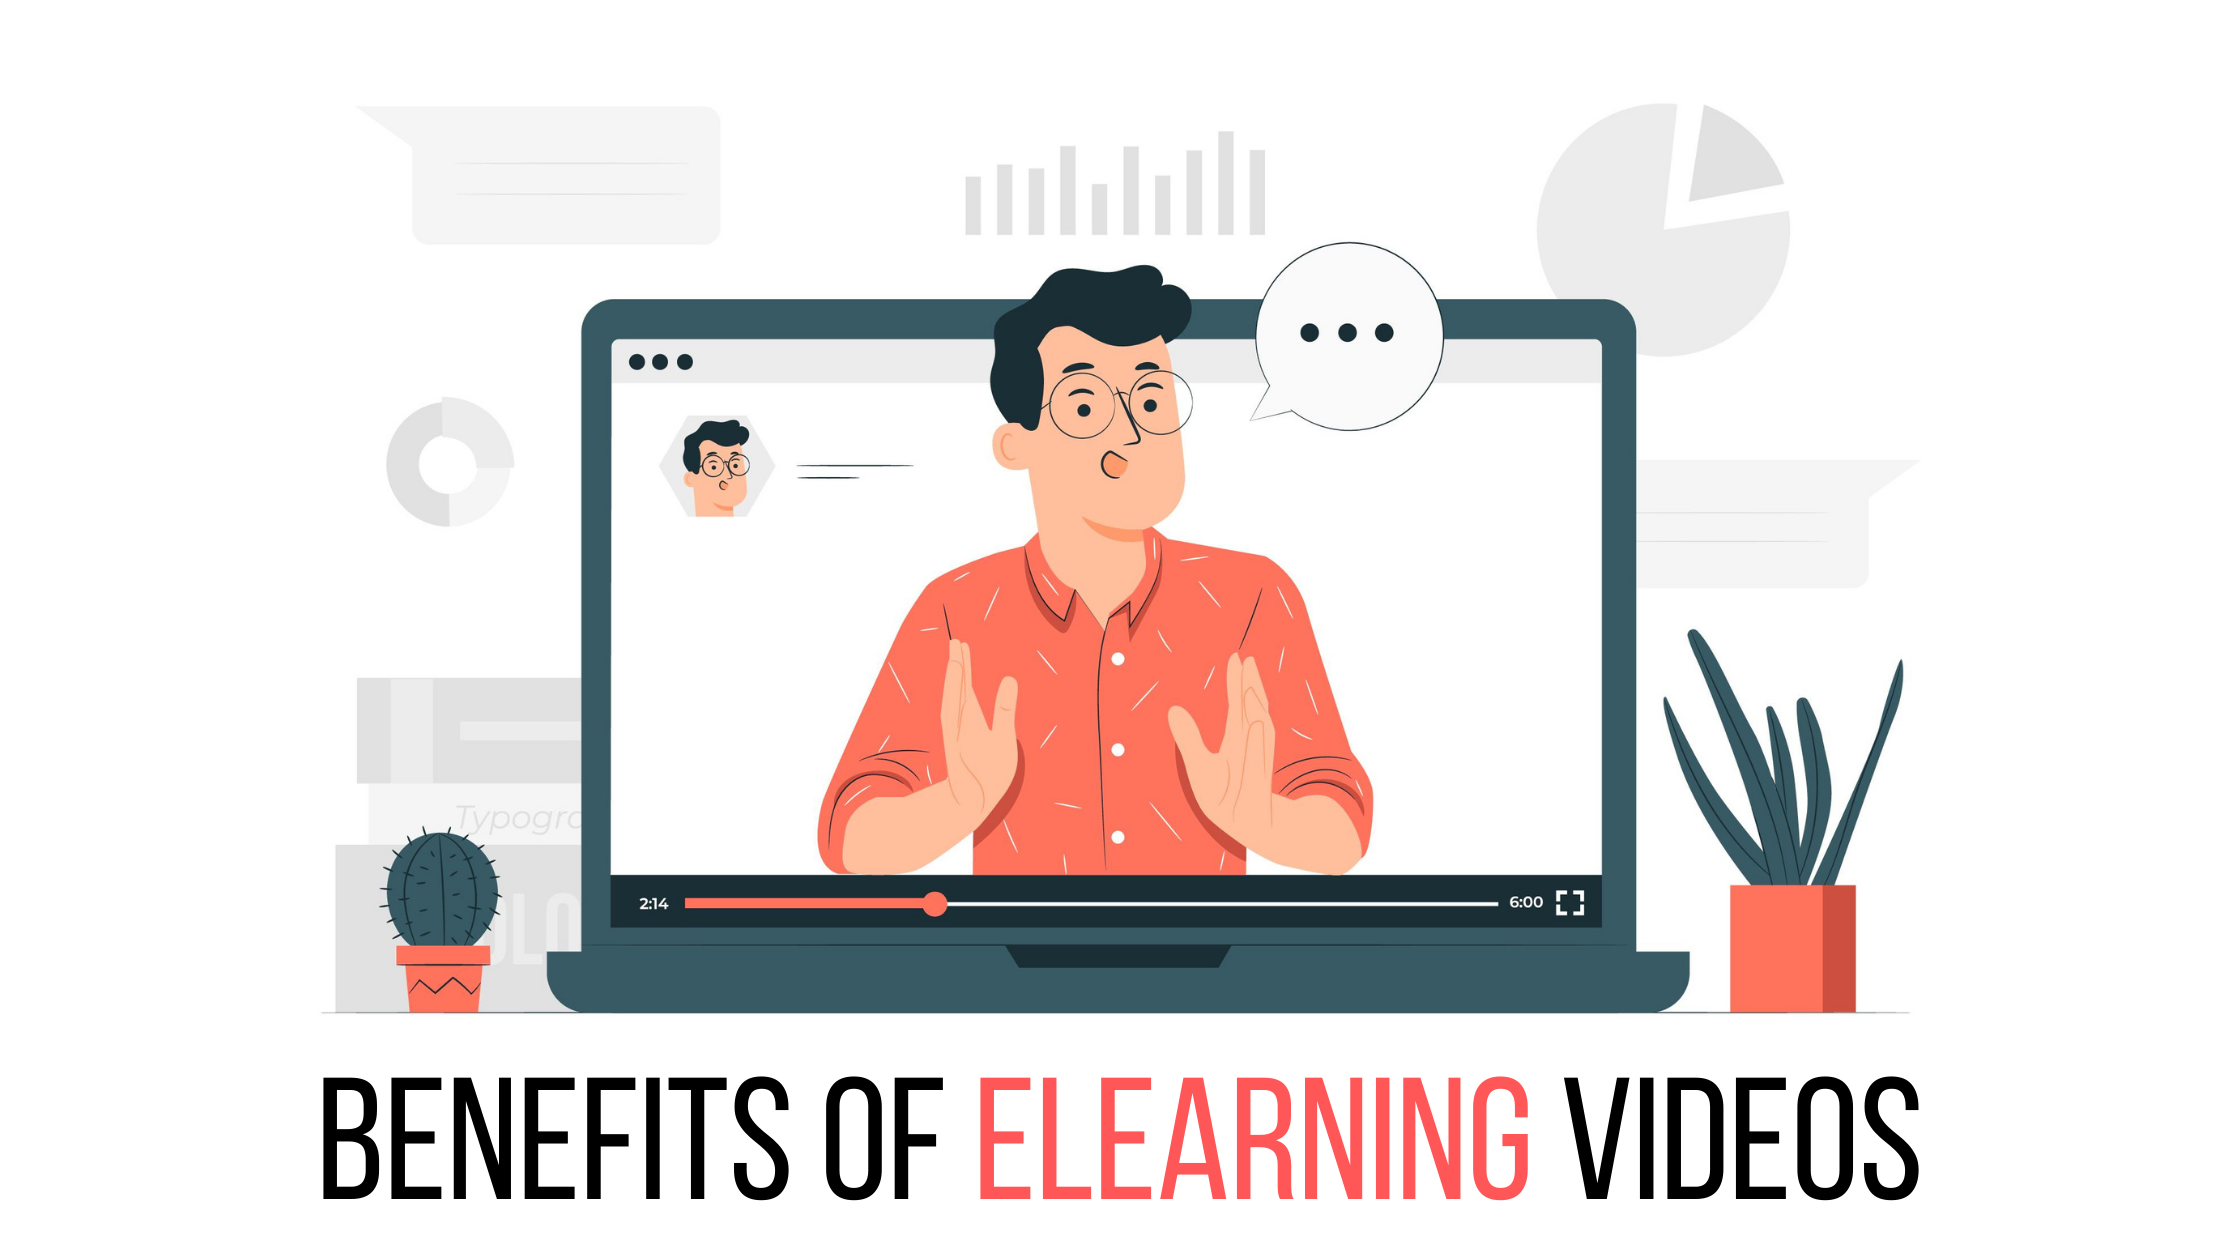 Benefits of eLearning videos